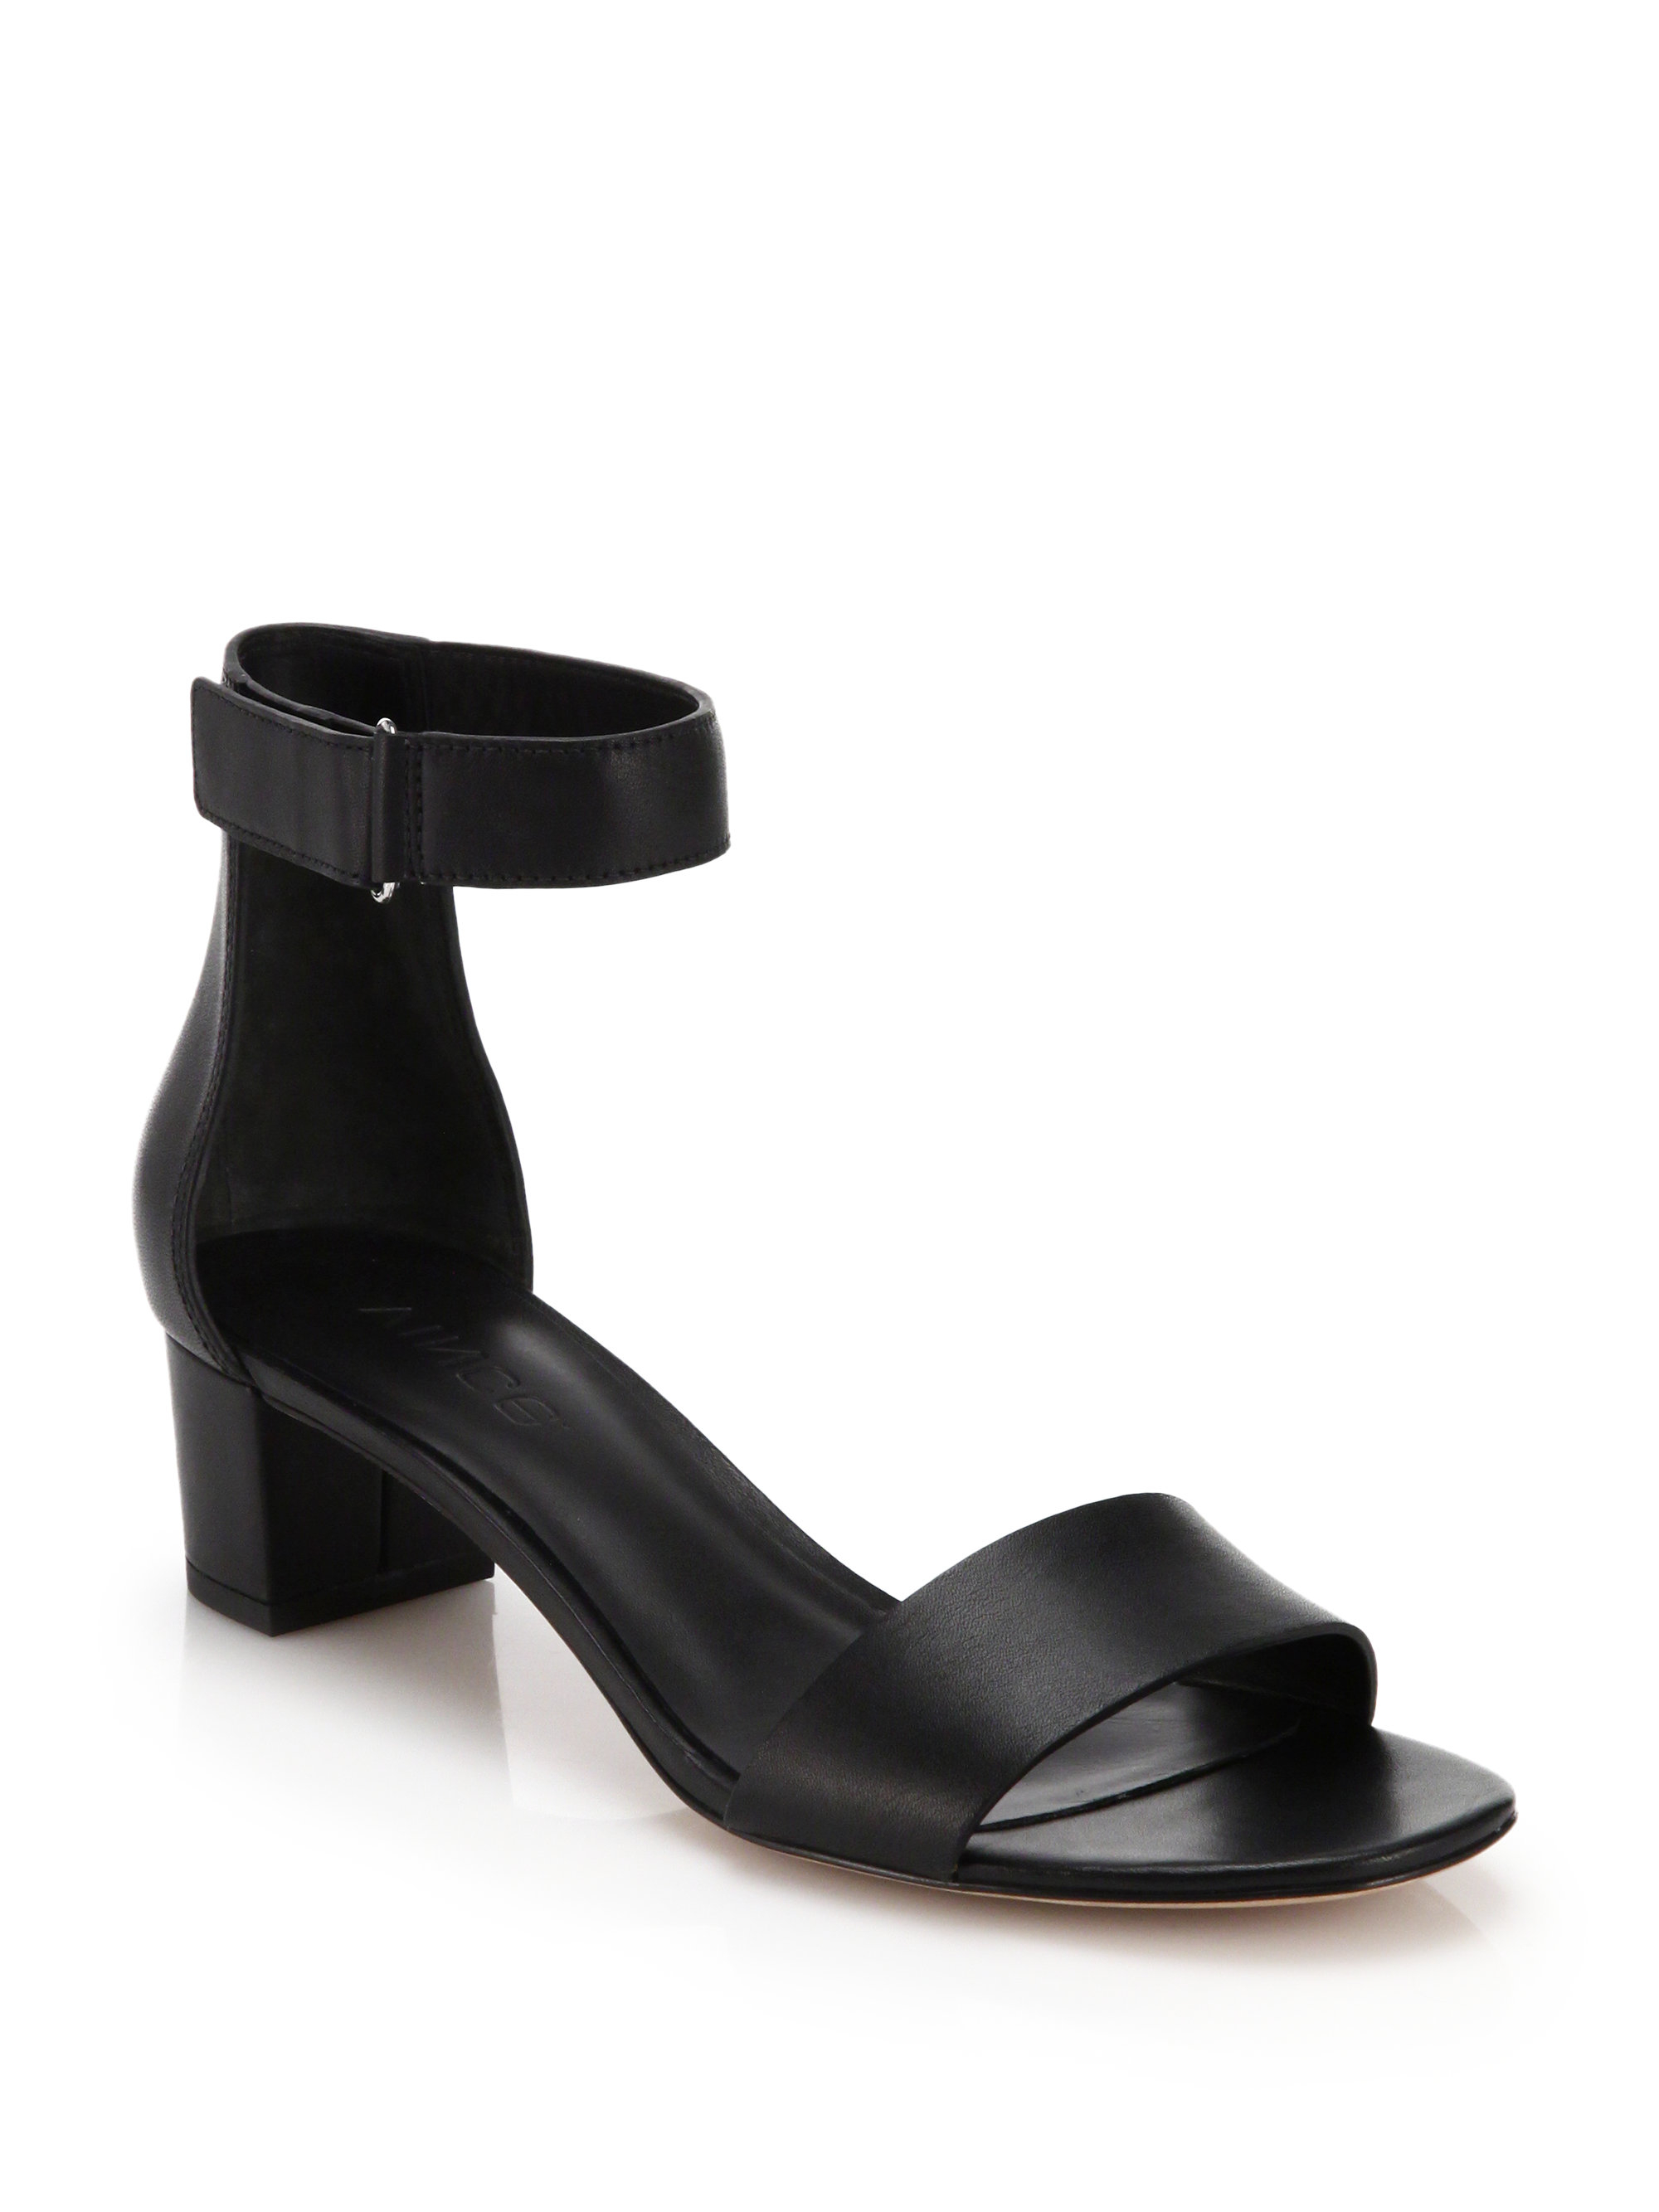 58c715a26cf Lyst - Vince Rita Leather City Sandals in Black